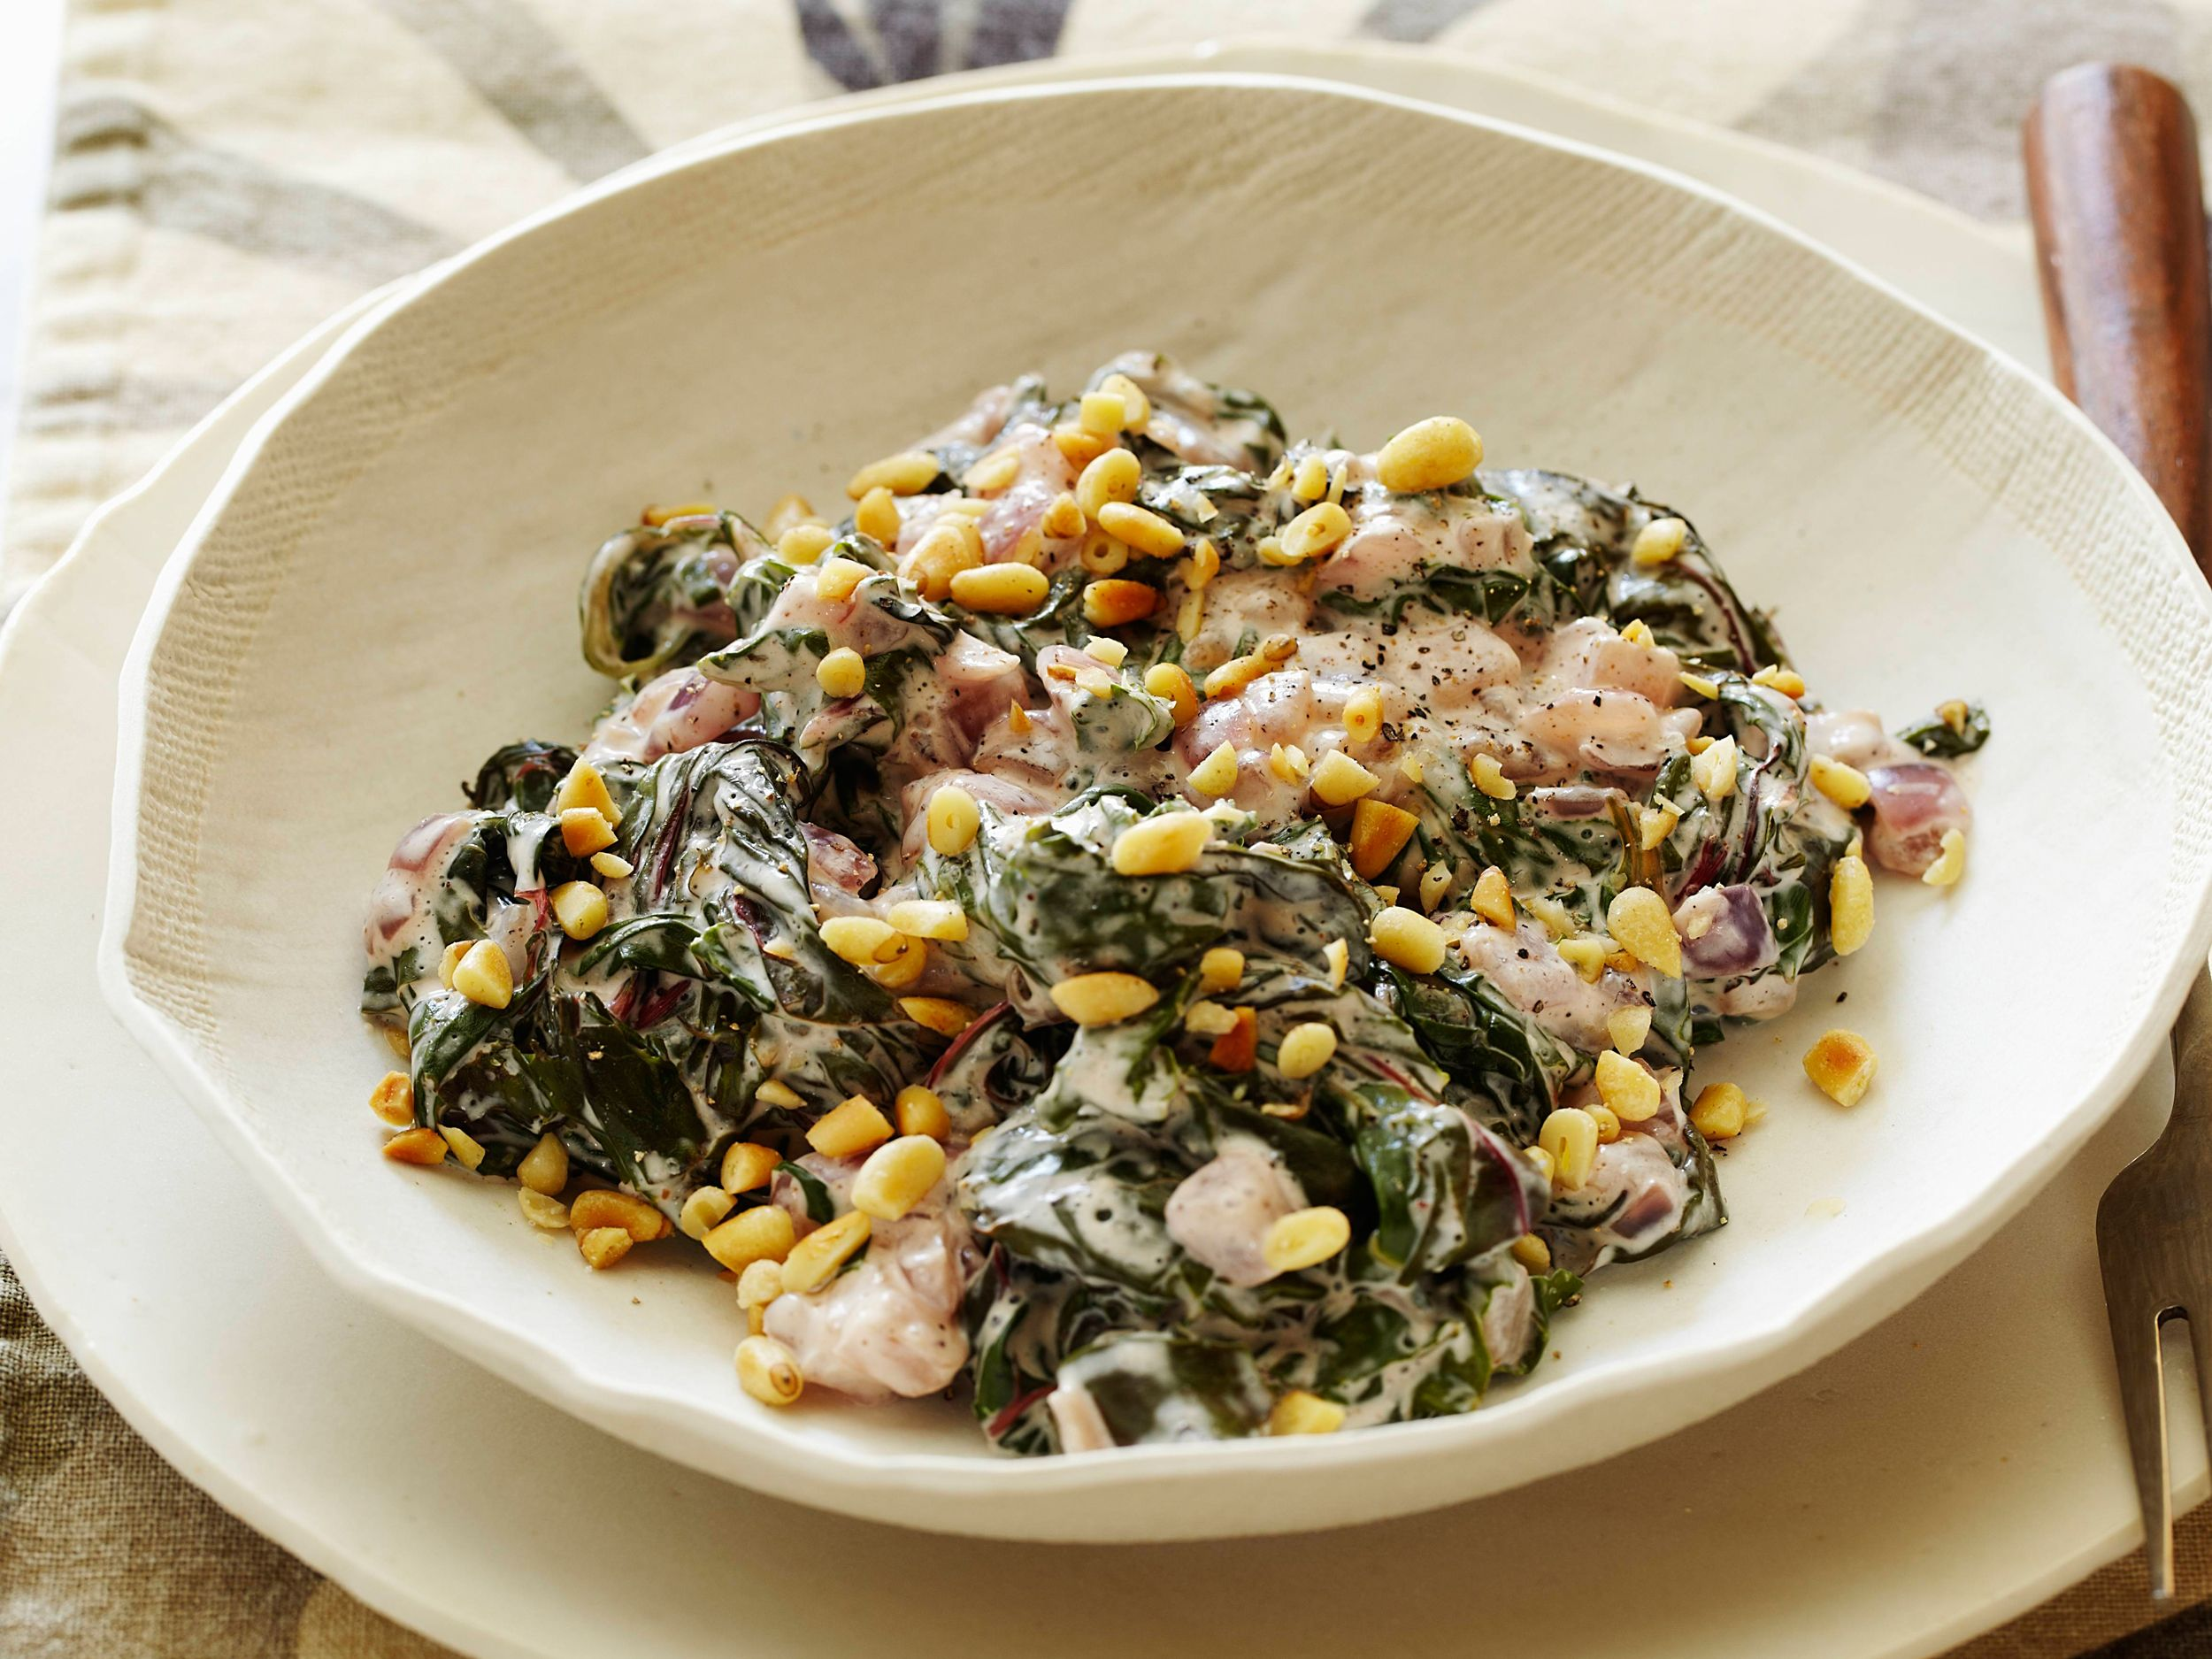 Healthy creamed swiss chard with pine nuts recipe nut recipes food forumfinder Image collections